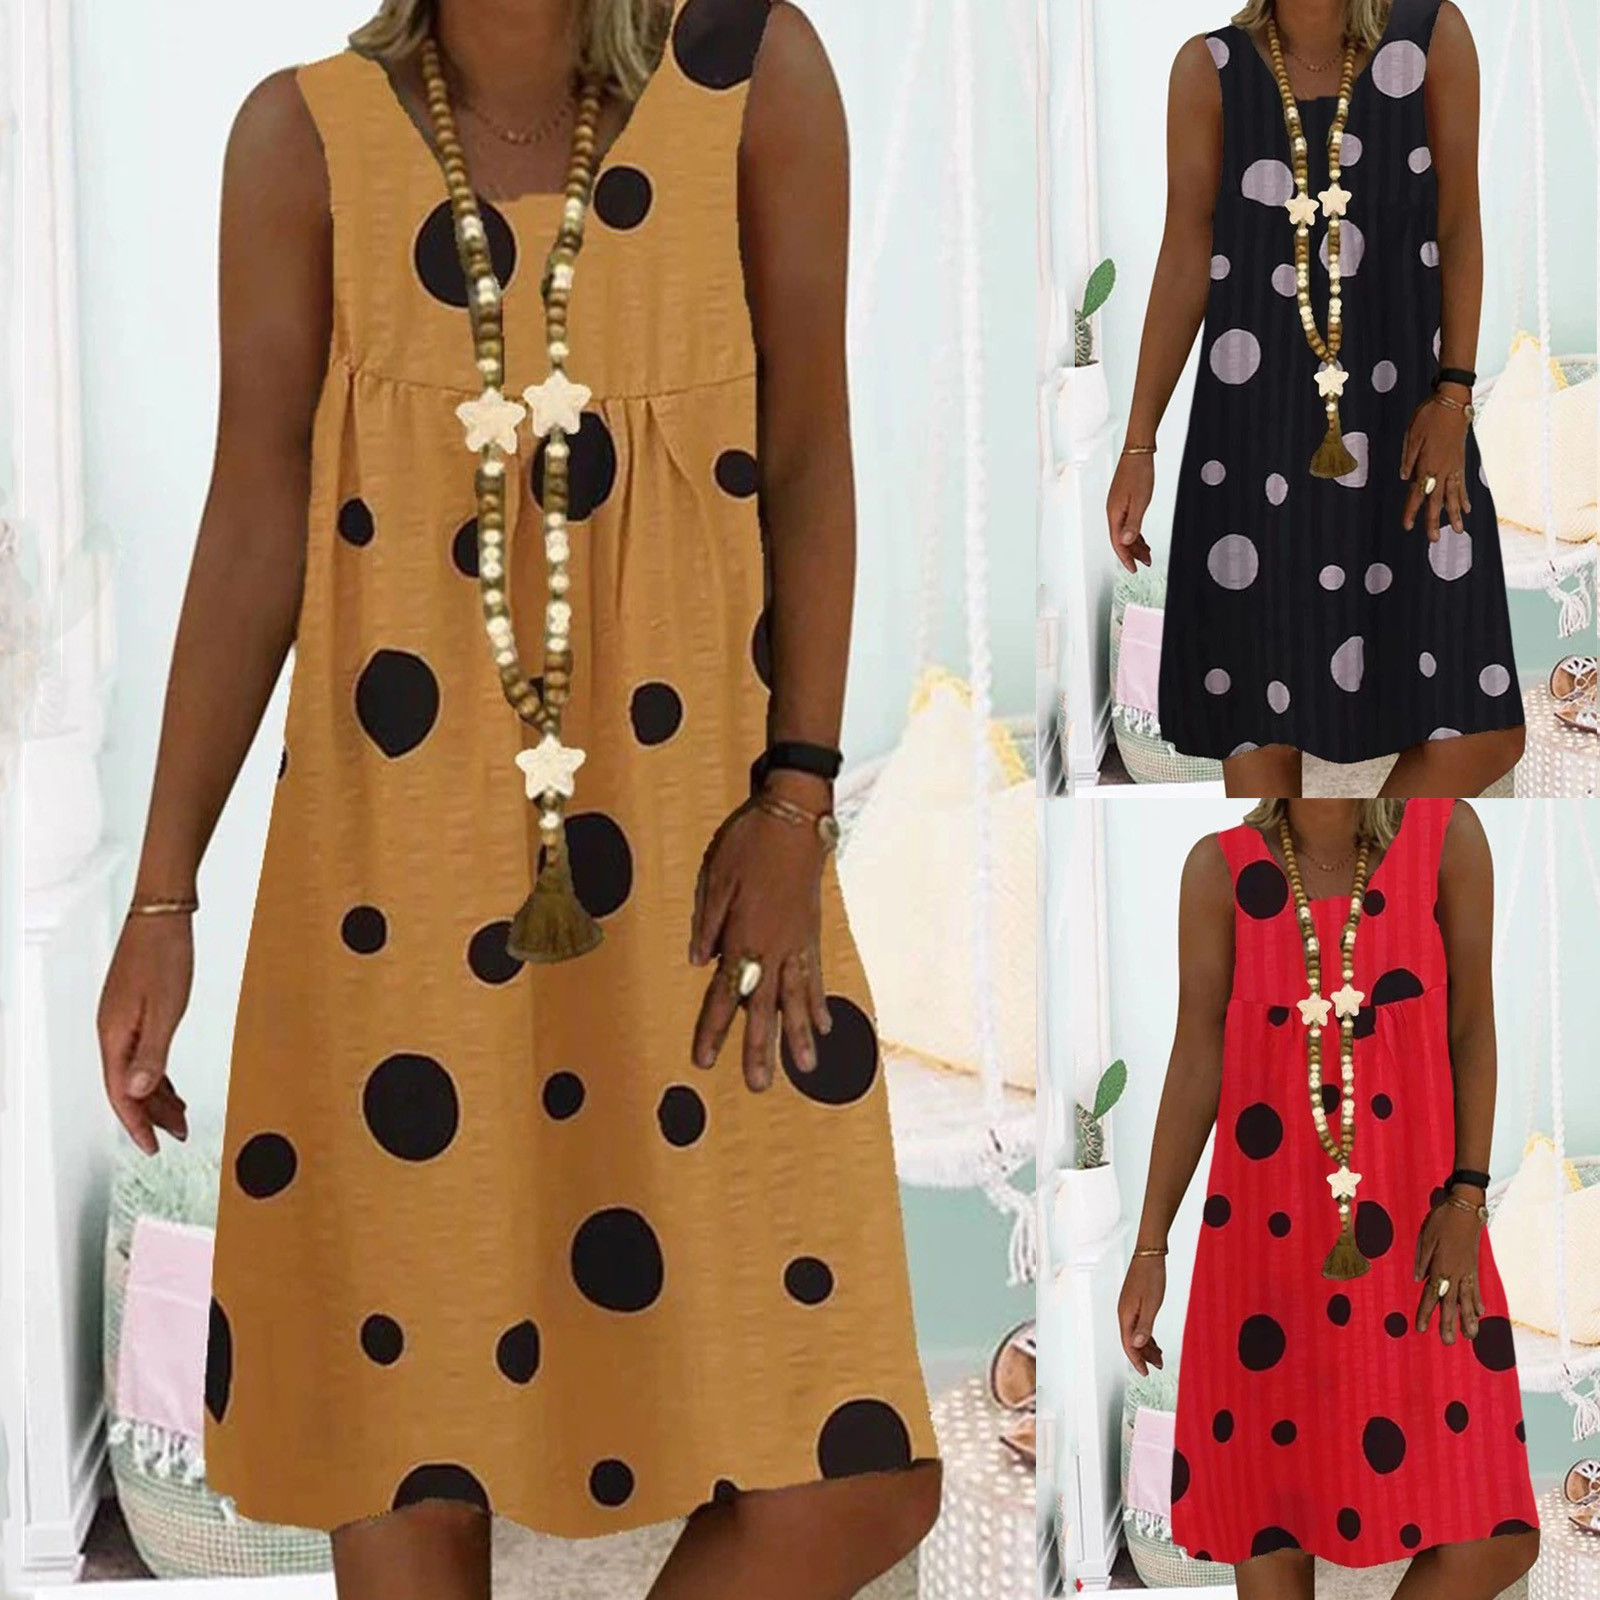 4# Women Plus Size Wave Point Print Daily Casual Sleeveless Vintage Bohemian Dress Summer Casual Vacation Slim Dress Women